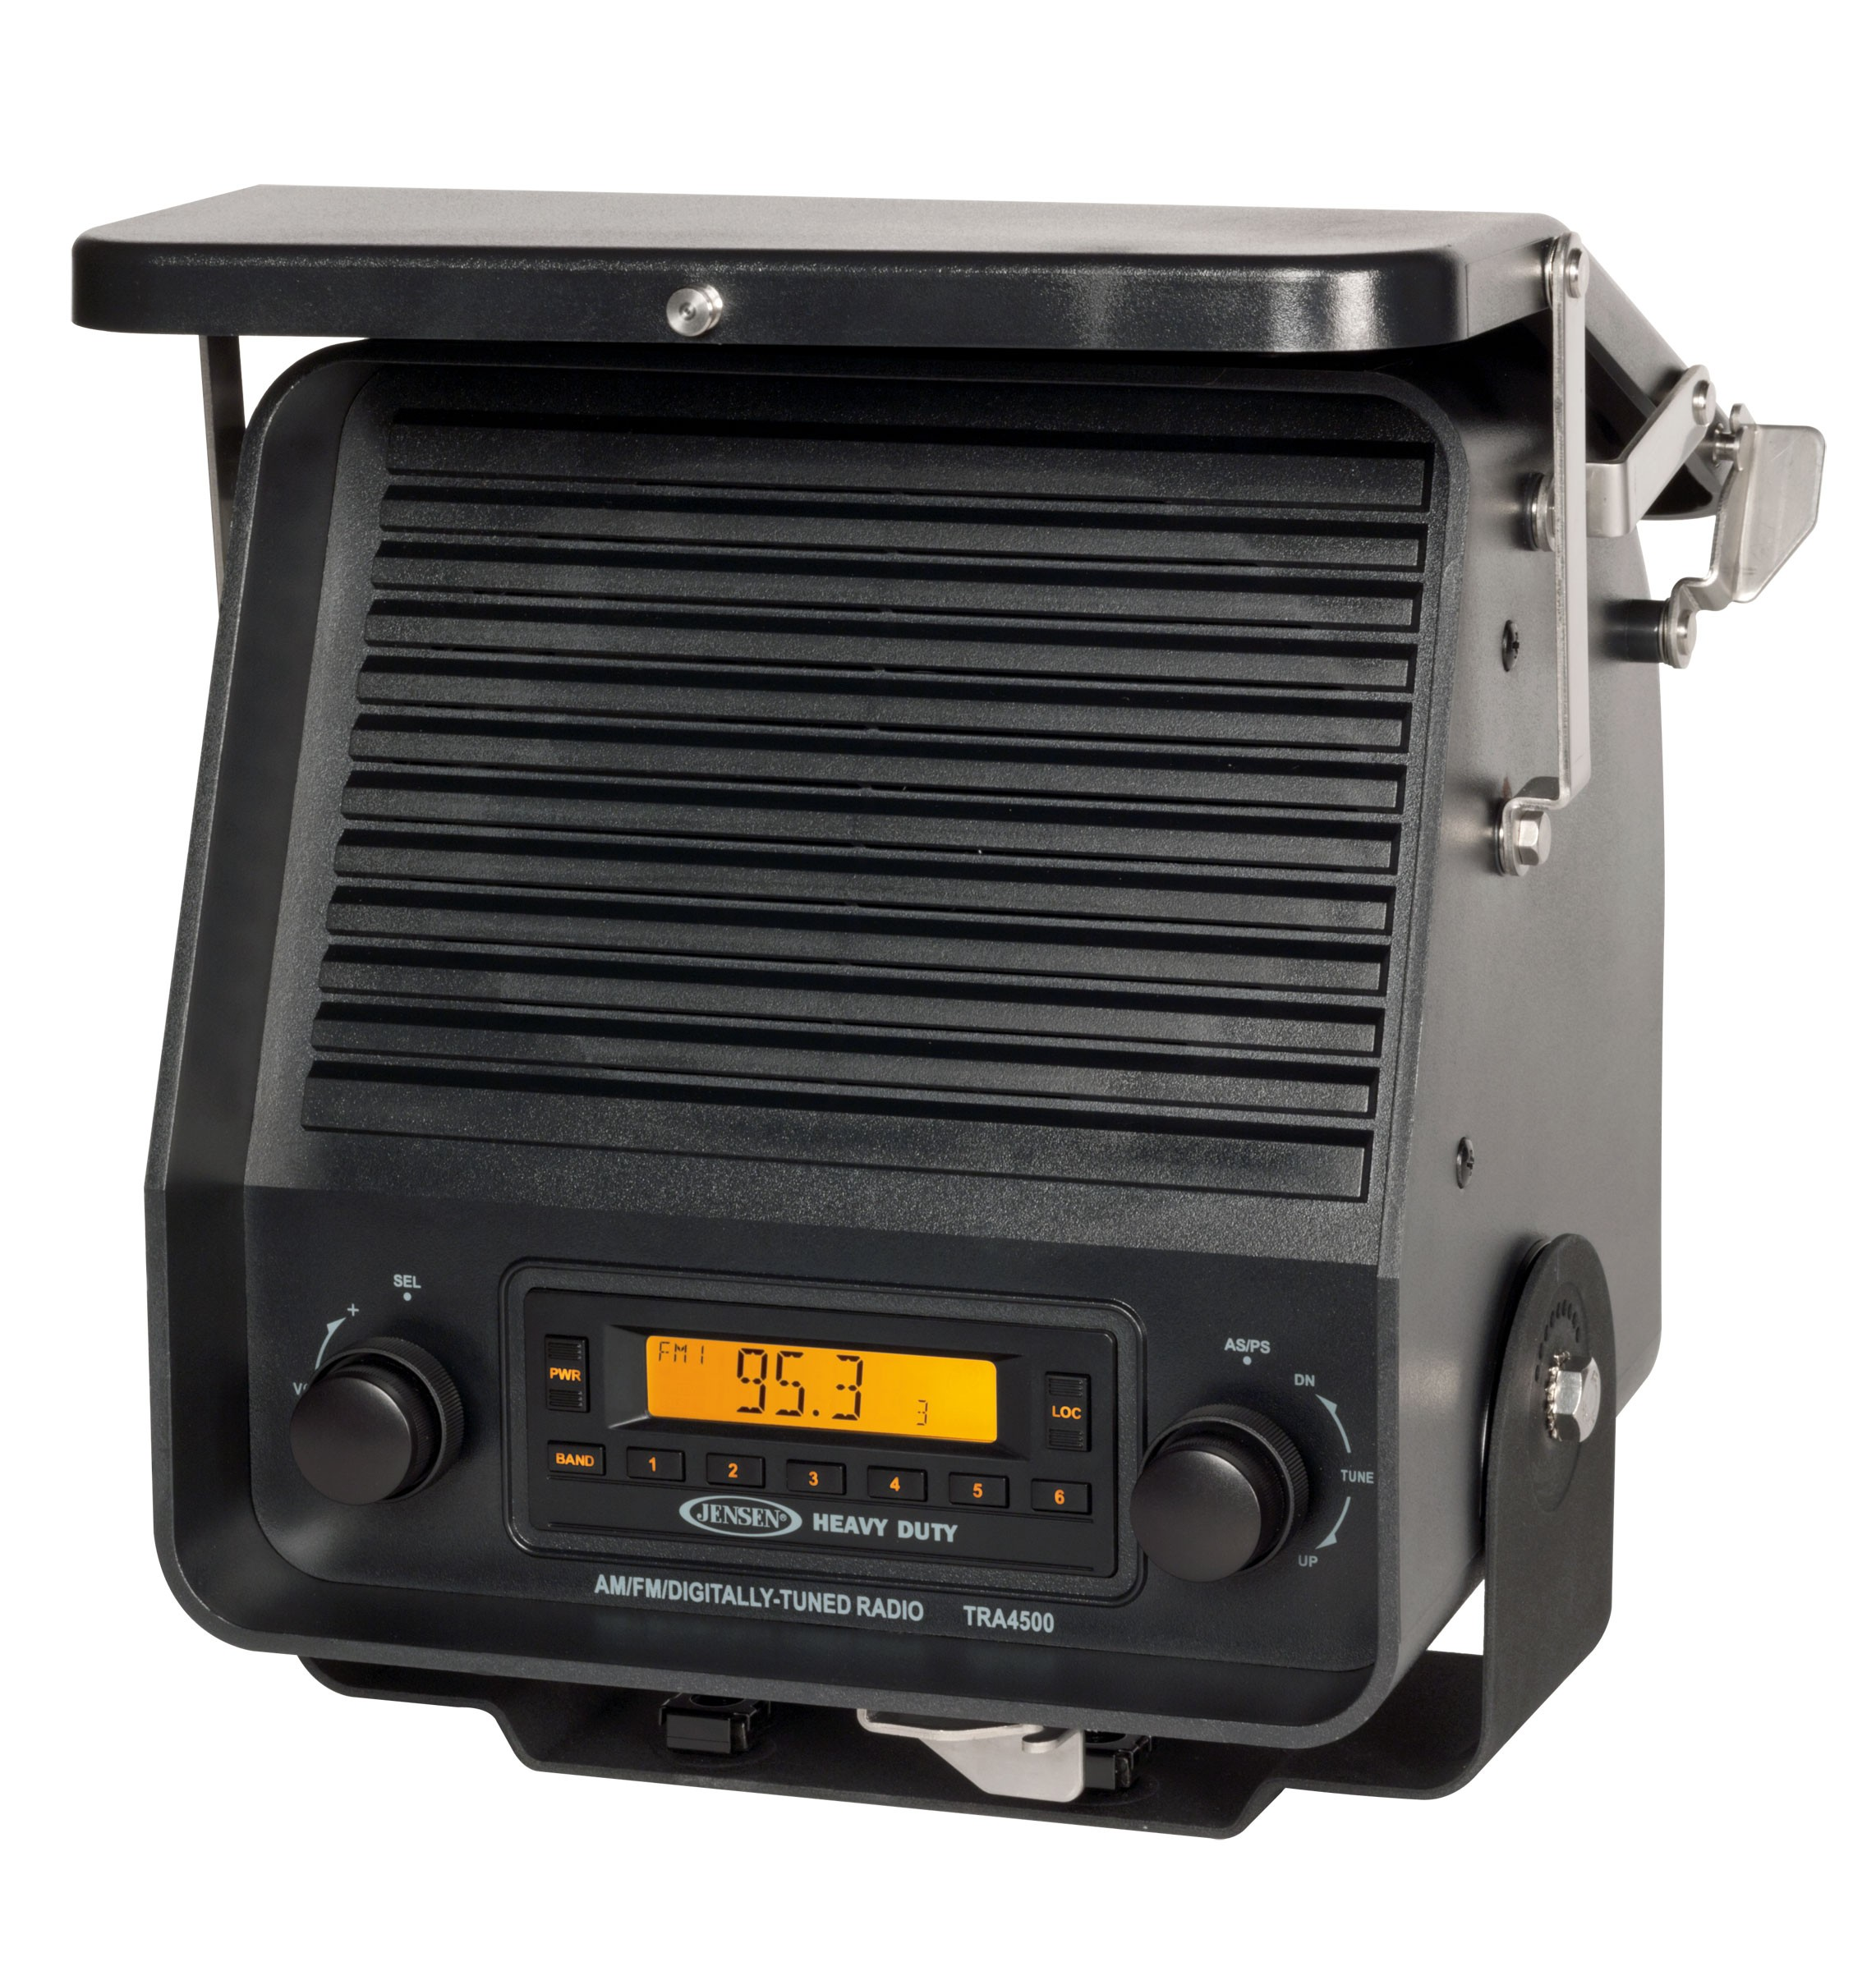 TRA4500 Heavy Duty Radio from Heavy Duty Radios.com